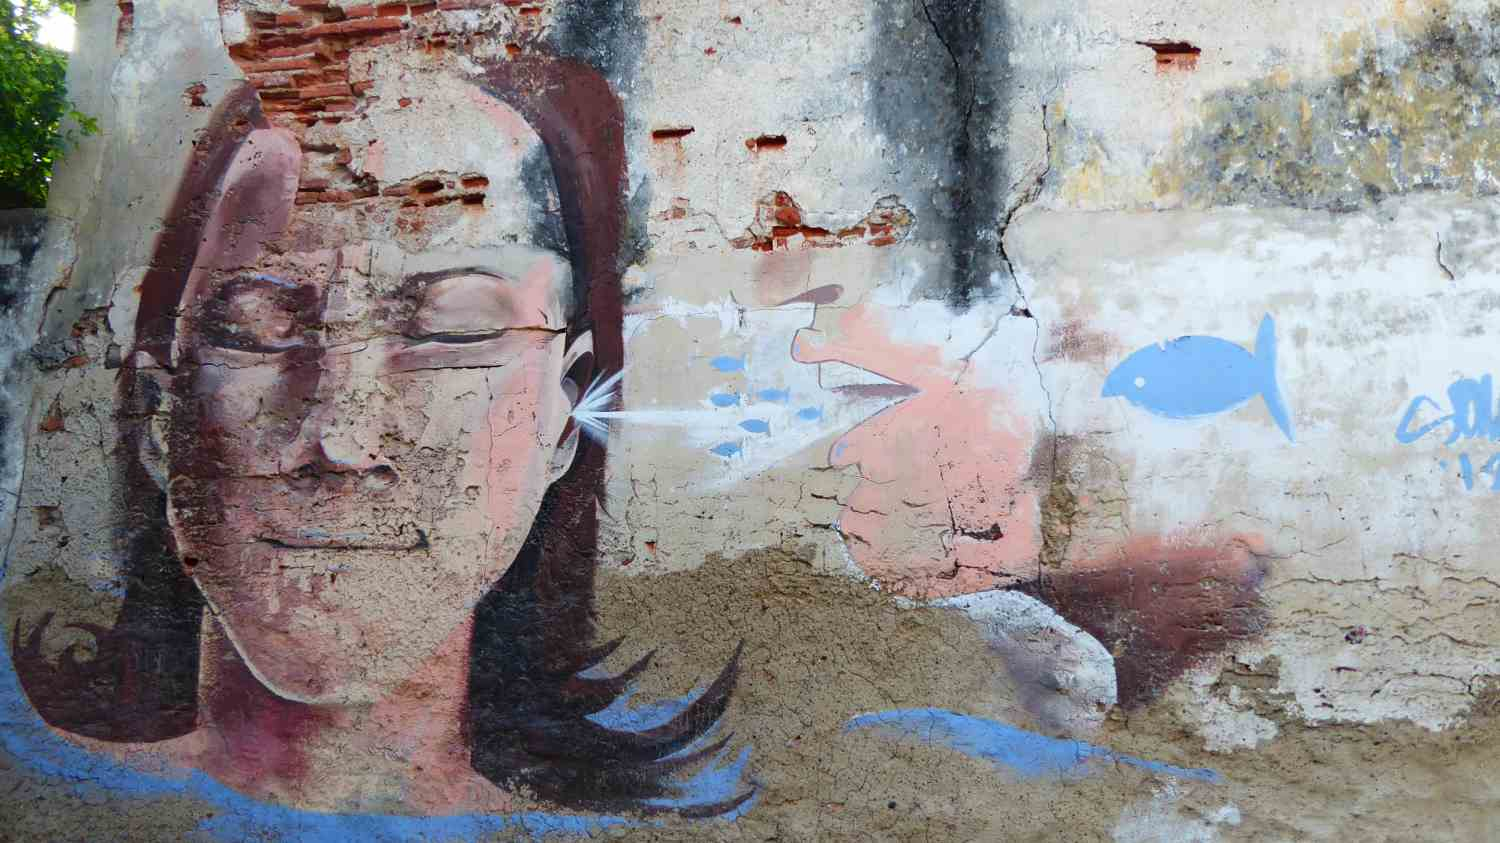 Nearly destroyed Murales in Cartagena